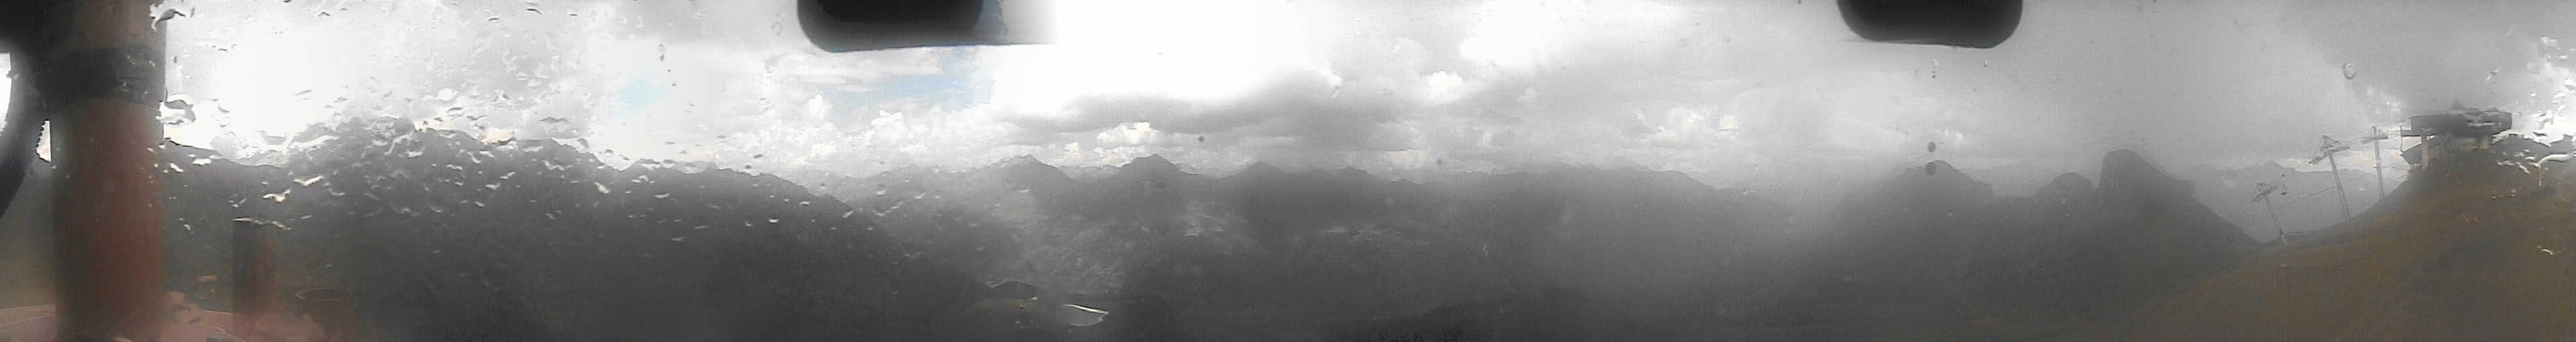 Webcams Serre Chevalier Villeneuve